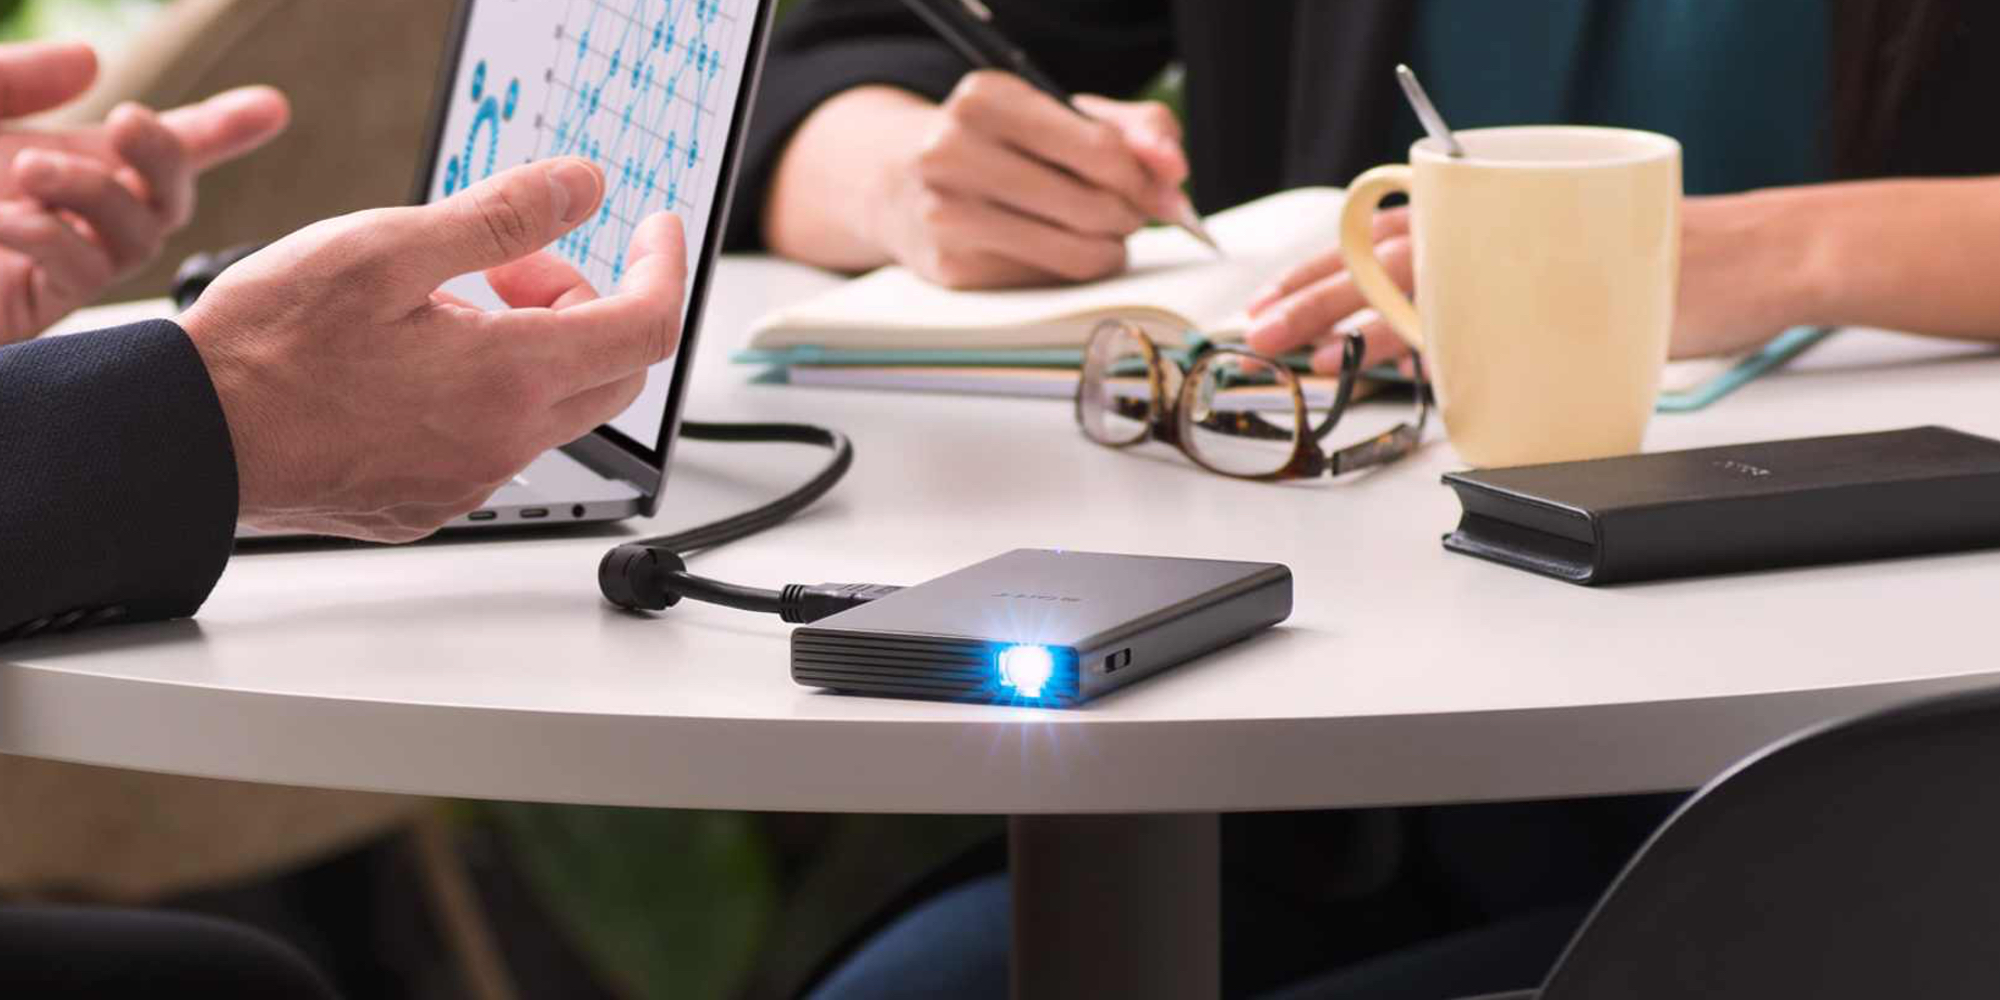 Save $100 on Sony's Portable Pico Projector, now down to a new Amazon low at $299